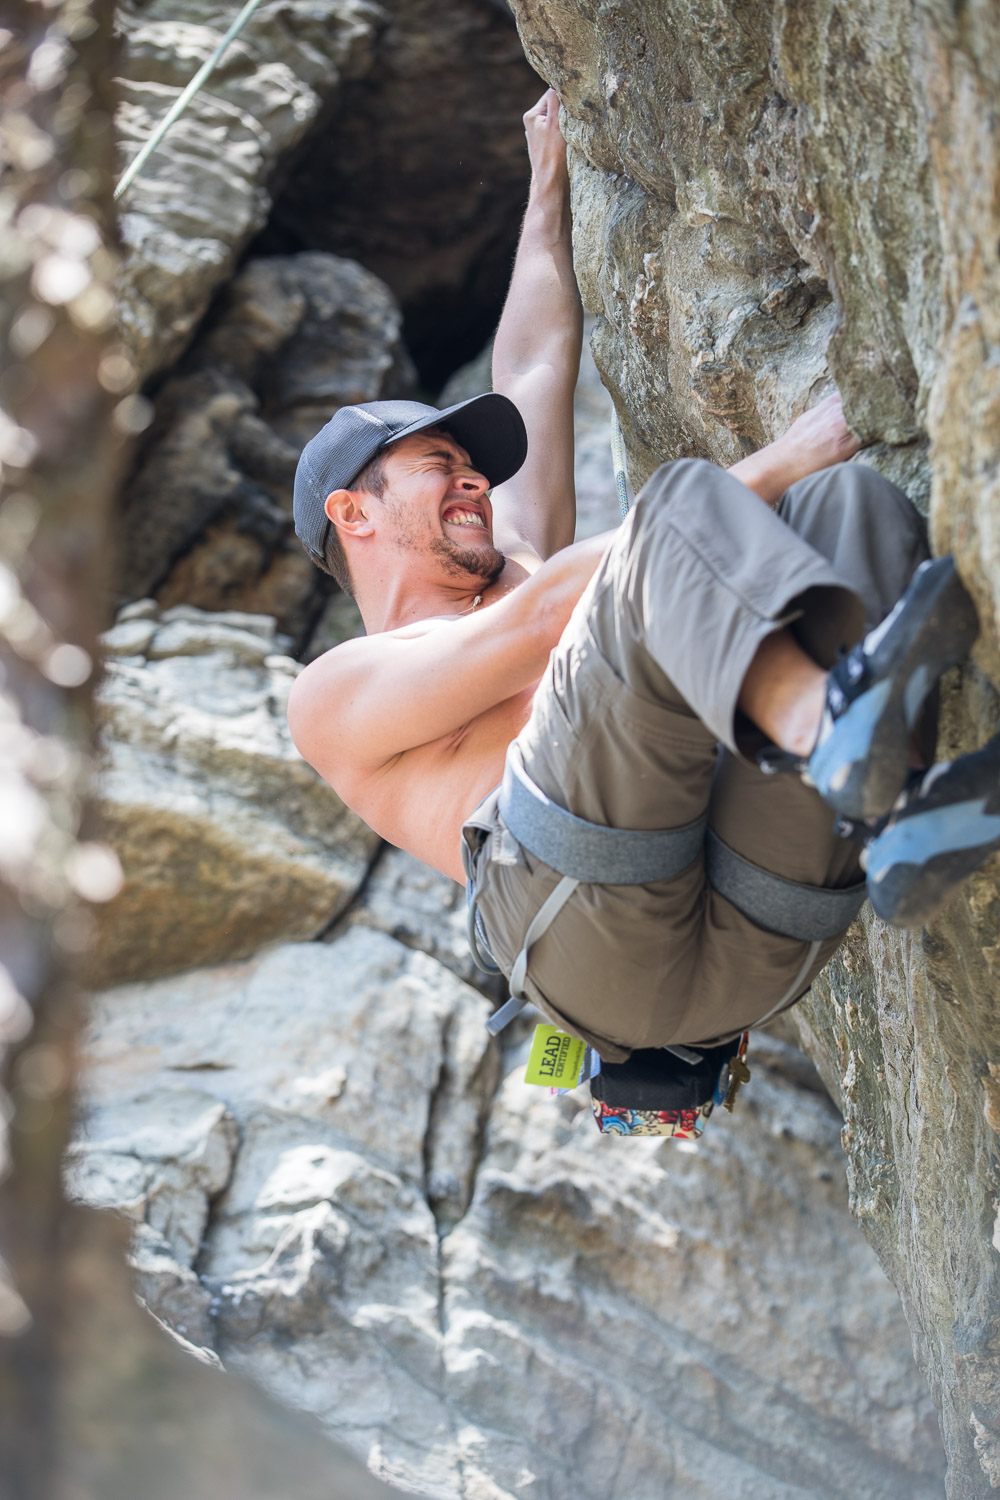 Emmanuel tried to turn a 5.5 route into a 5.10 route by going over a boulder instead of around it. Work it, Emmanuel!